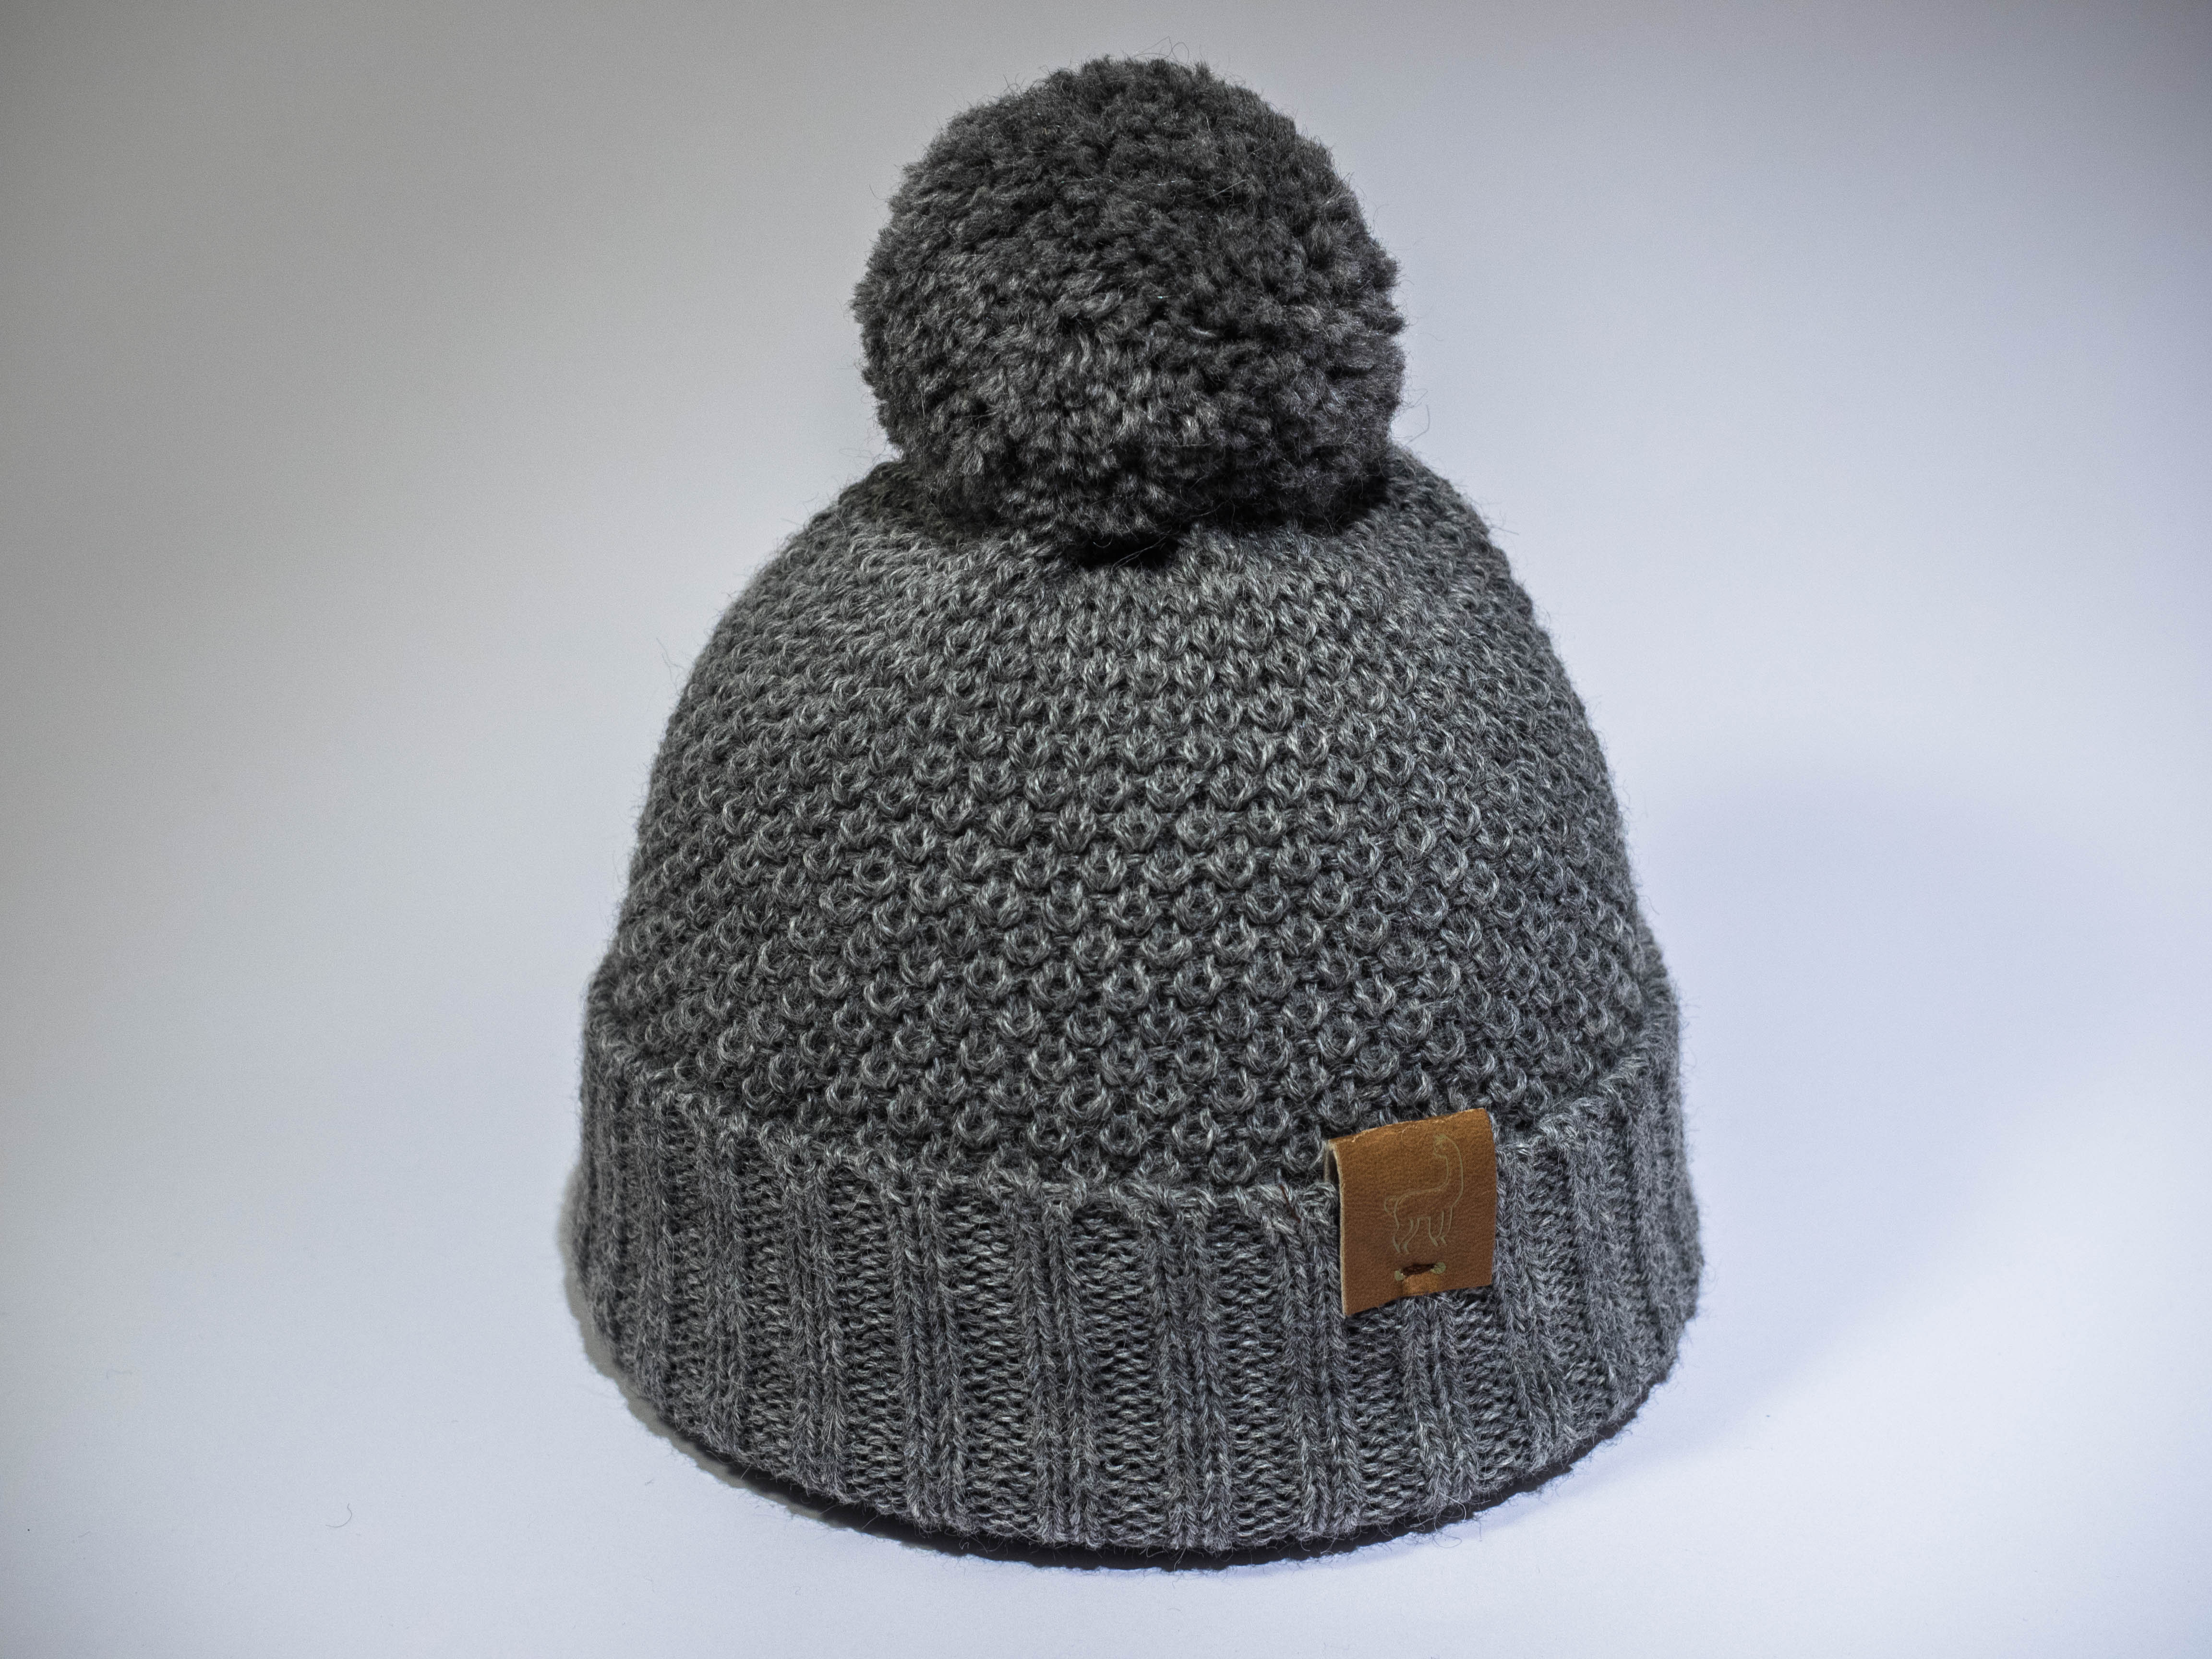 a4404a6a6b9 Alpaca Natural wool children s hats in Grey with pom poms by Ted   Bessie  at Nurture